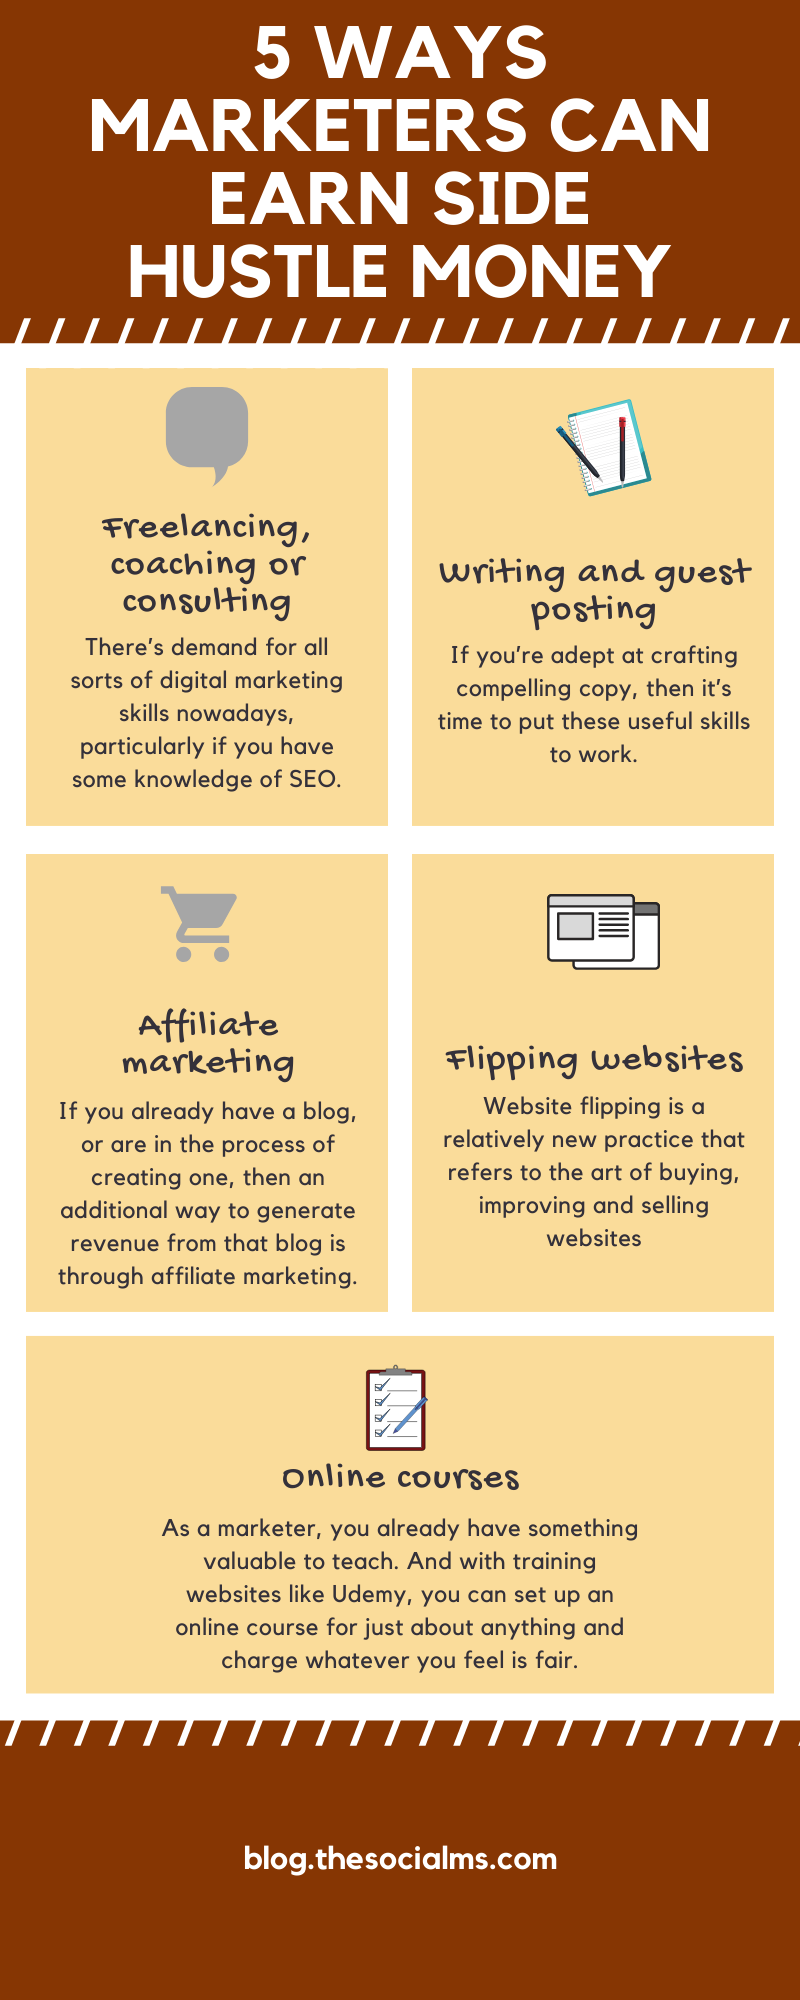 as a marketer, you already have an incredibly useful skill that will help you considerably in your efforts – whatever you decide to do. So without further ado, here are five cool ways that you can start side hustling today and turn your spare hours into spare cash. #makemoneyblogging #bloggingformoney #digitalmarketing #onlinebusiness #smallbusinessmarketing #entrepreneurship #solopreneur #startupmarketing #bloggingtips